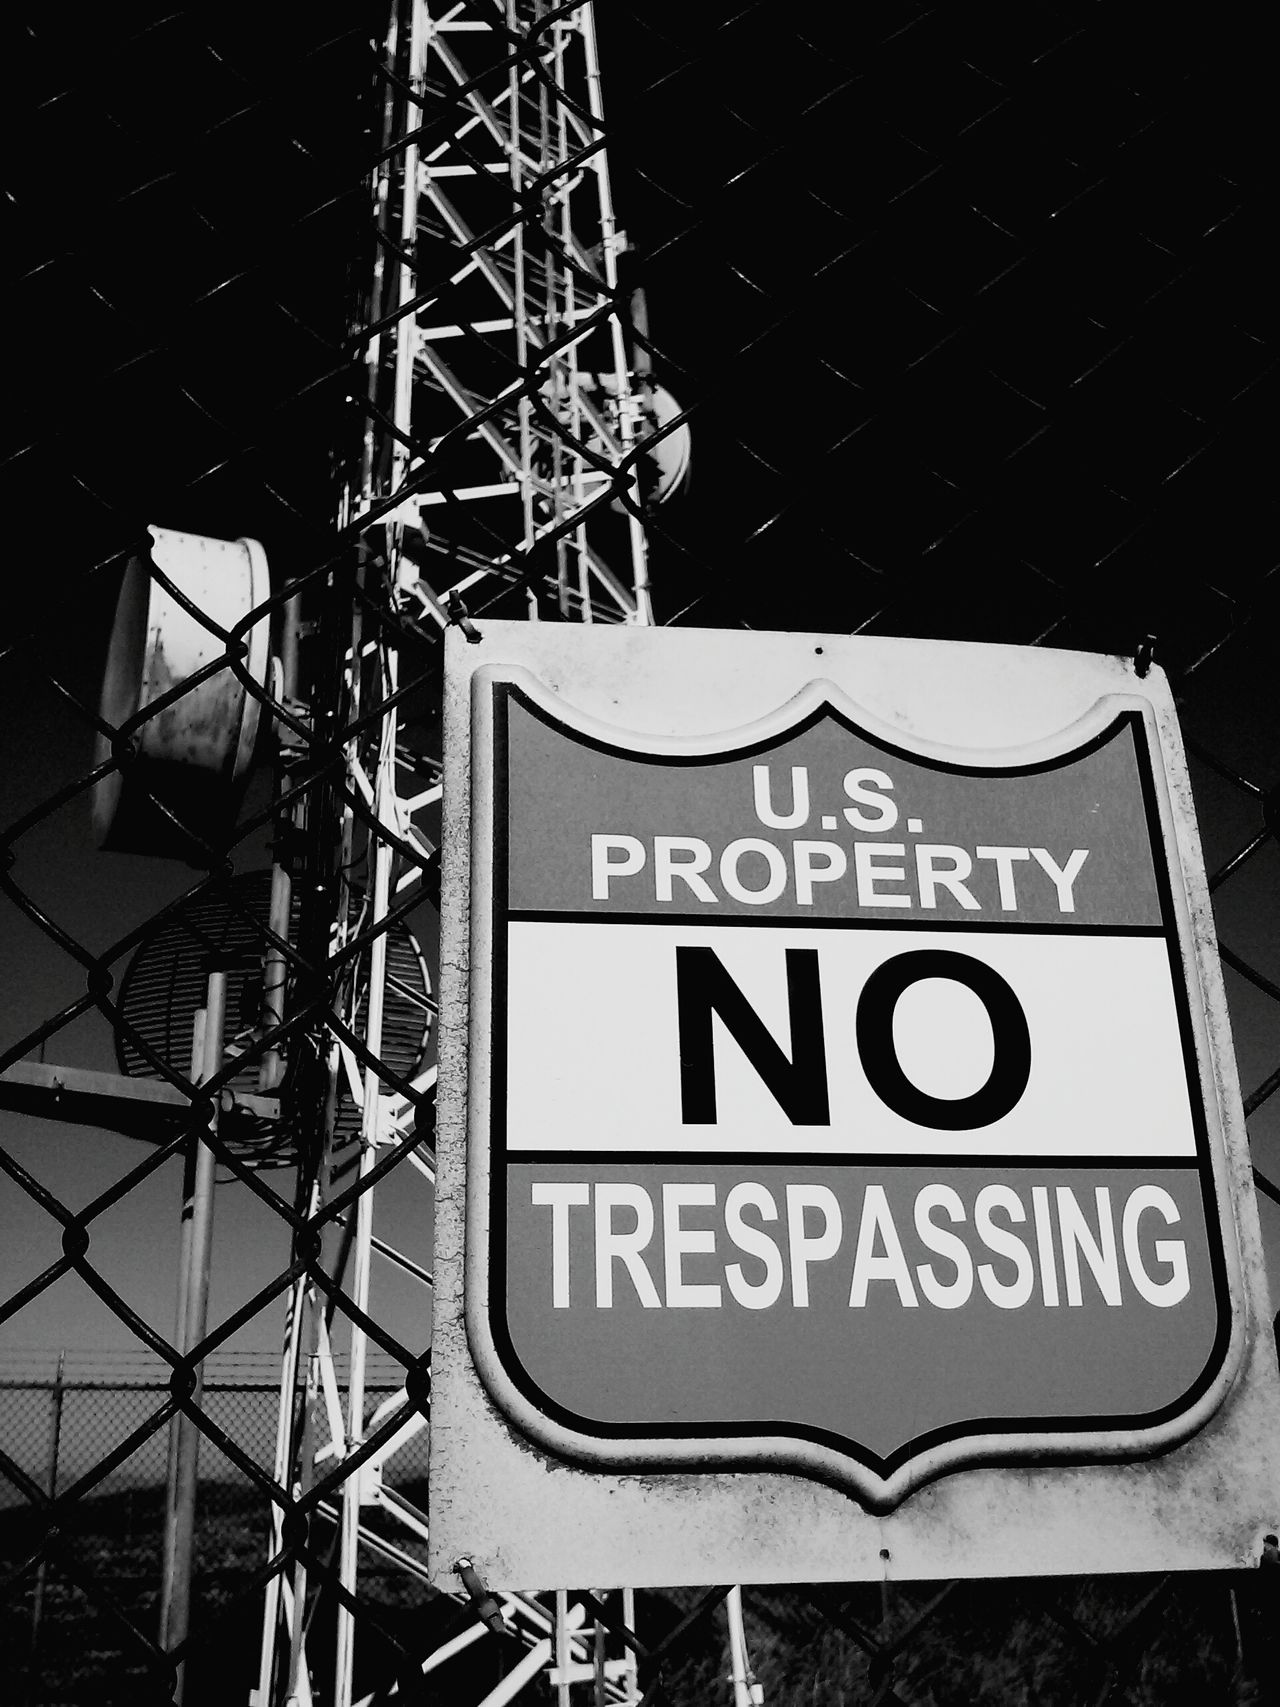 Loudthougts Notrespassing B&w Photography Adventures